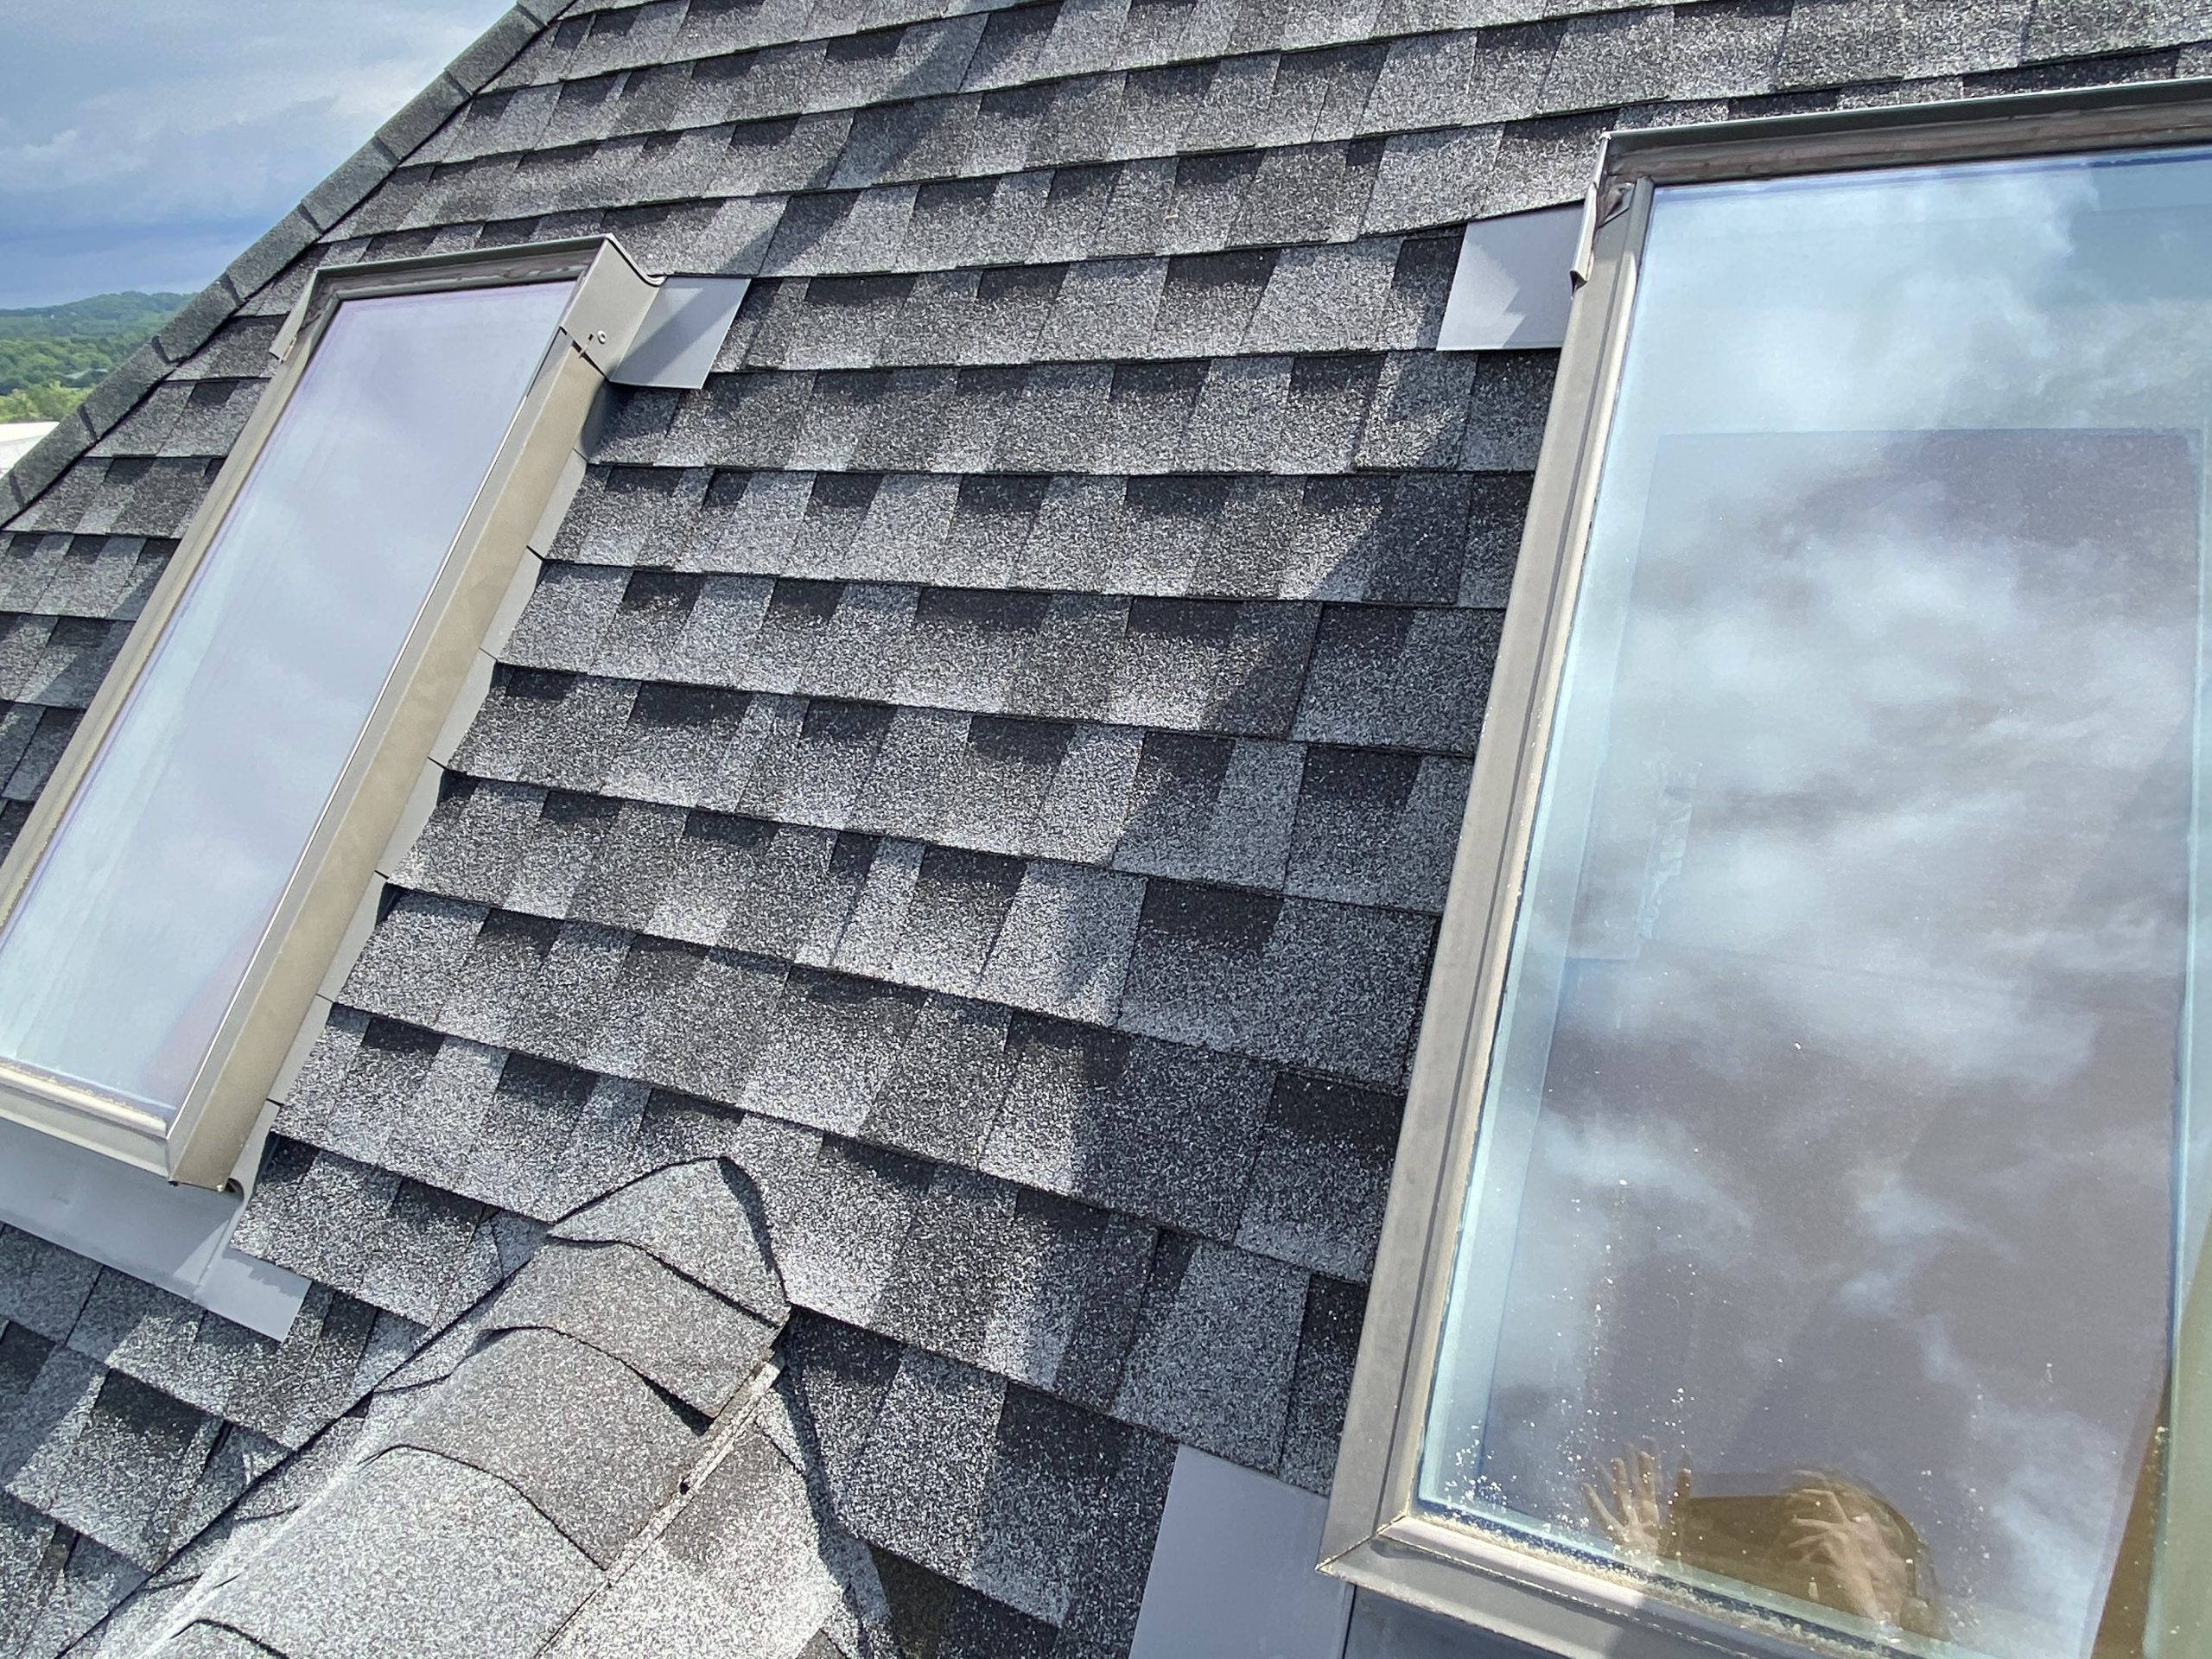 This is a view of skylights on the roof with GAF Charcoal shingles.